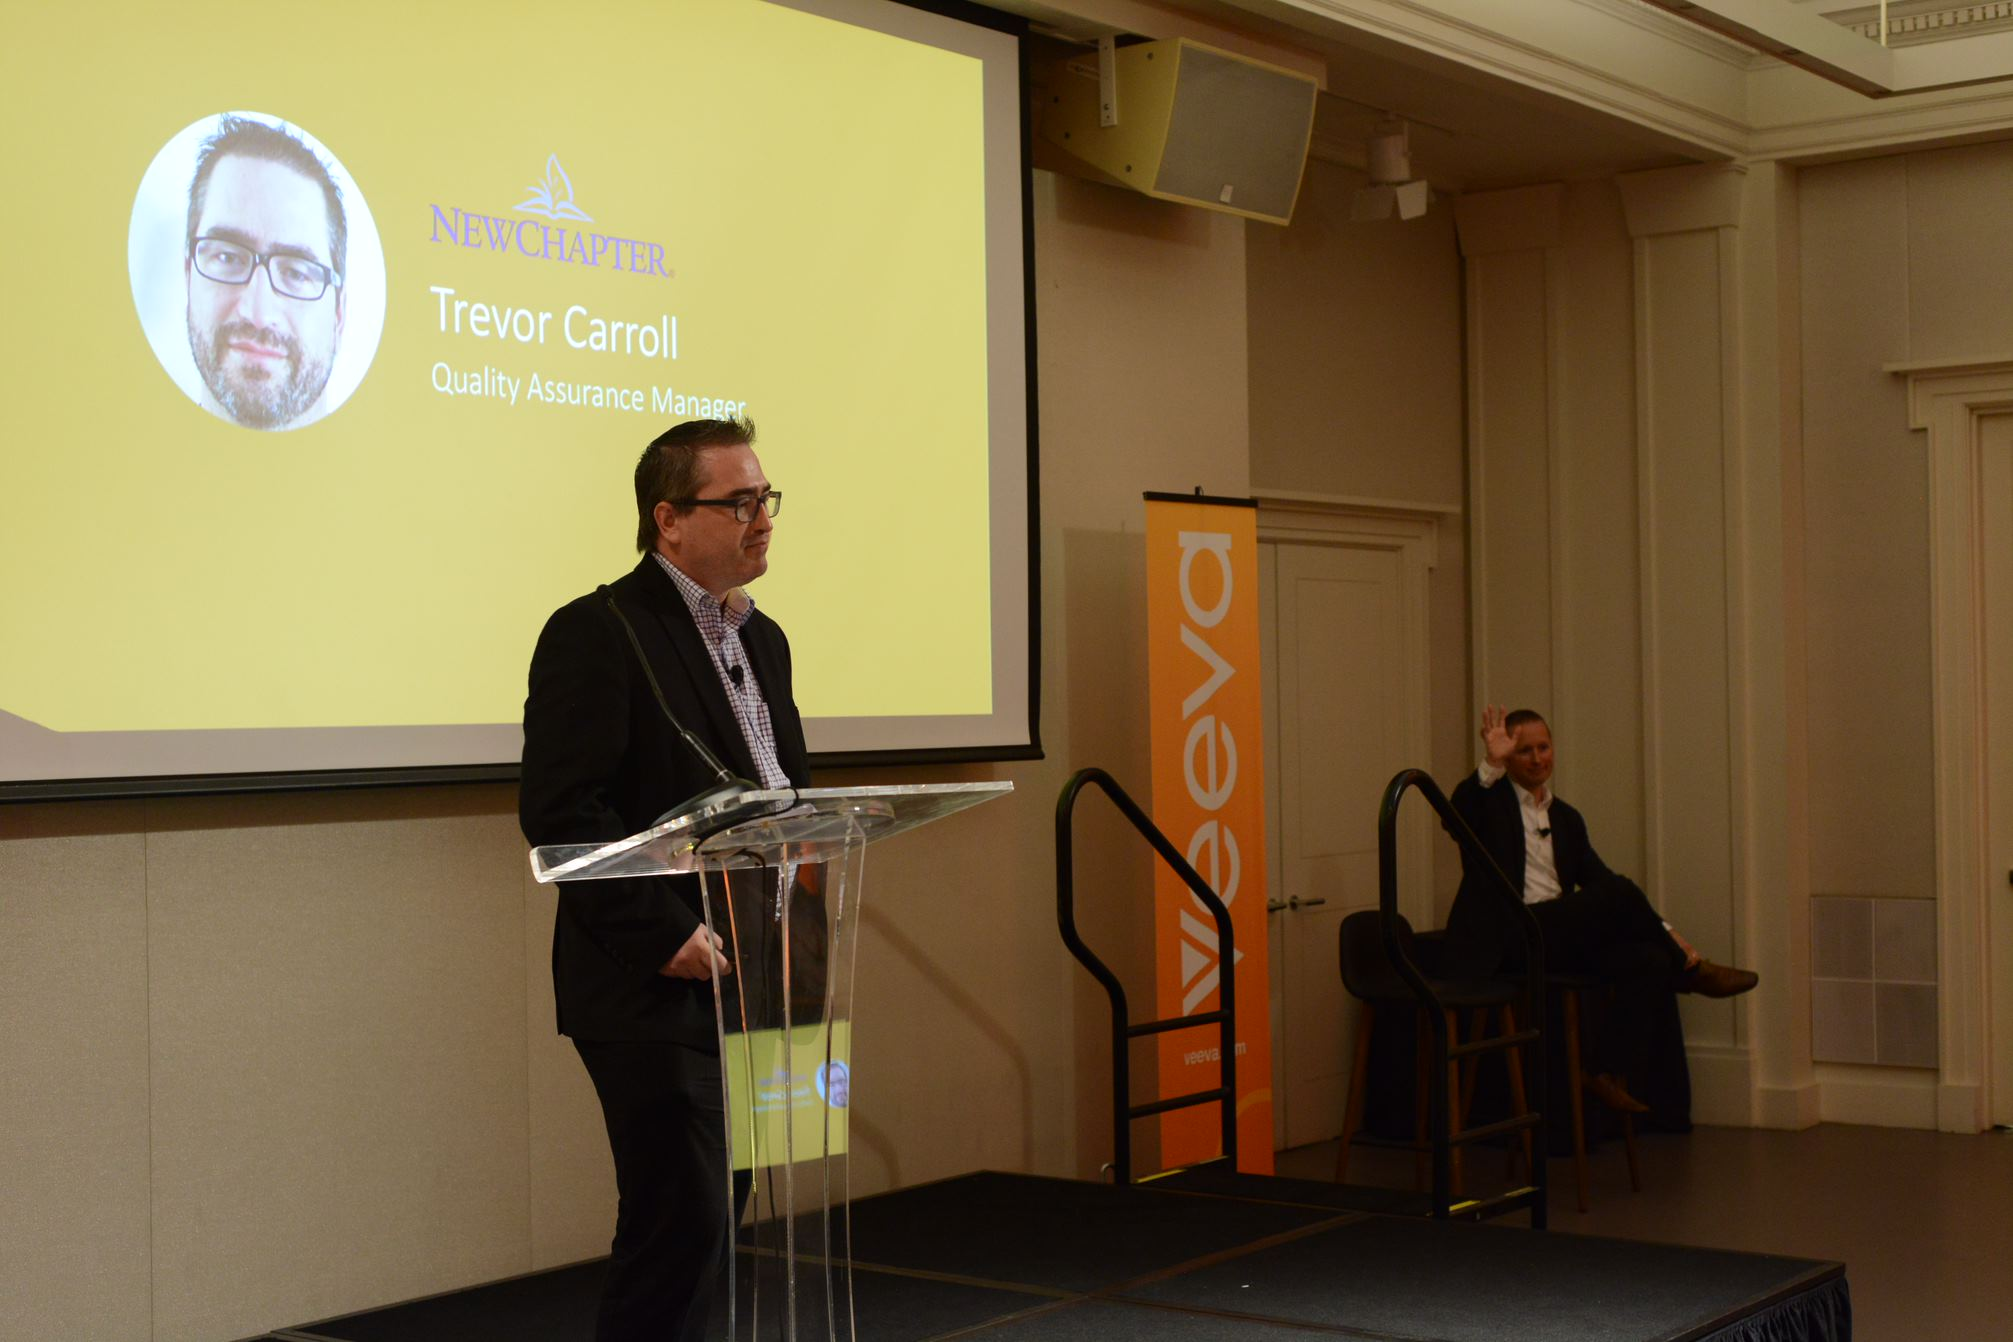 Trevor Carroll, Quality Assurance Manager from New Chapter